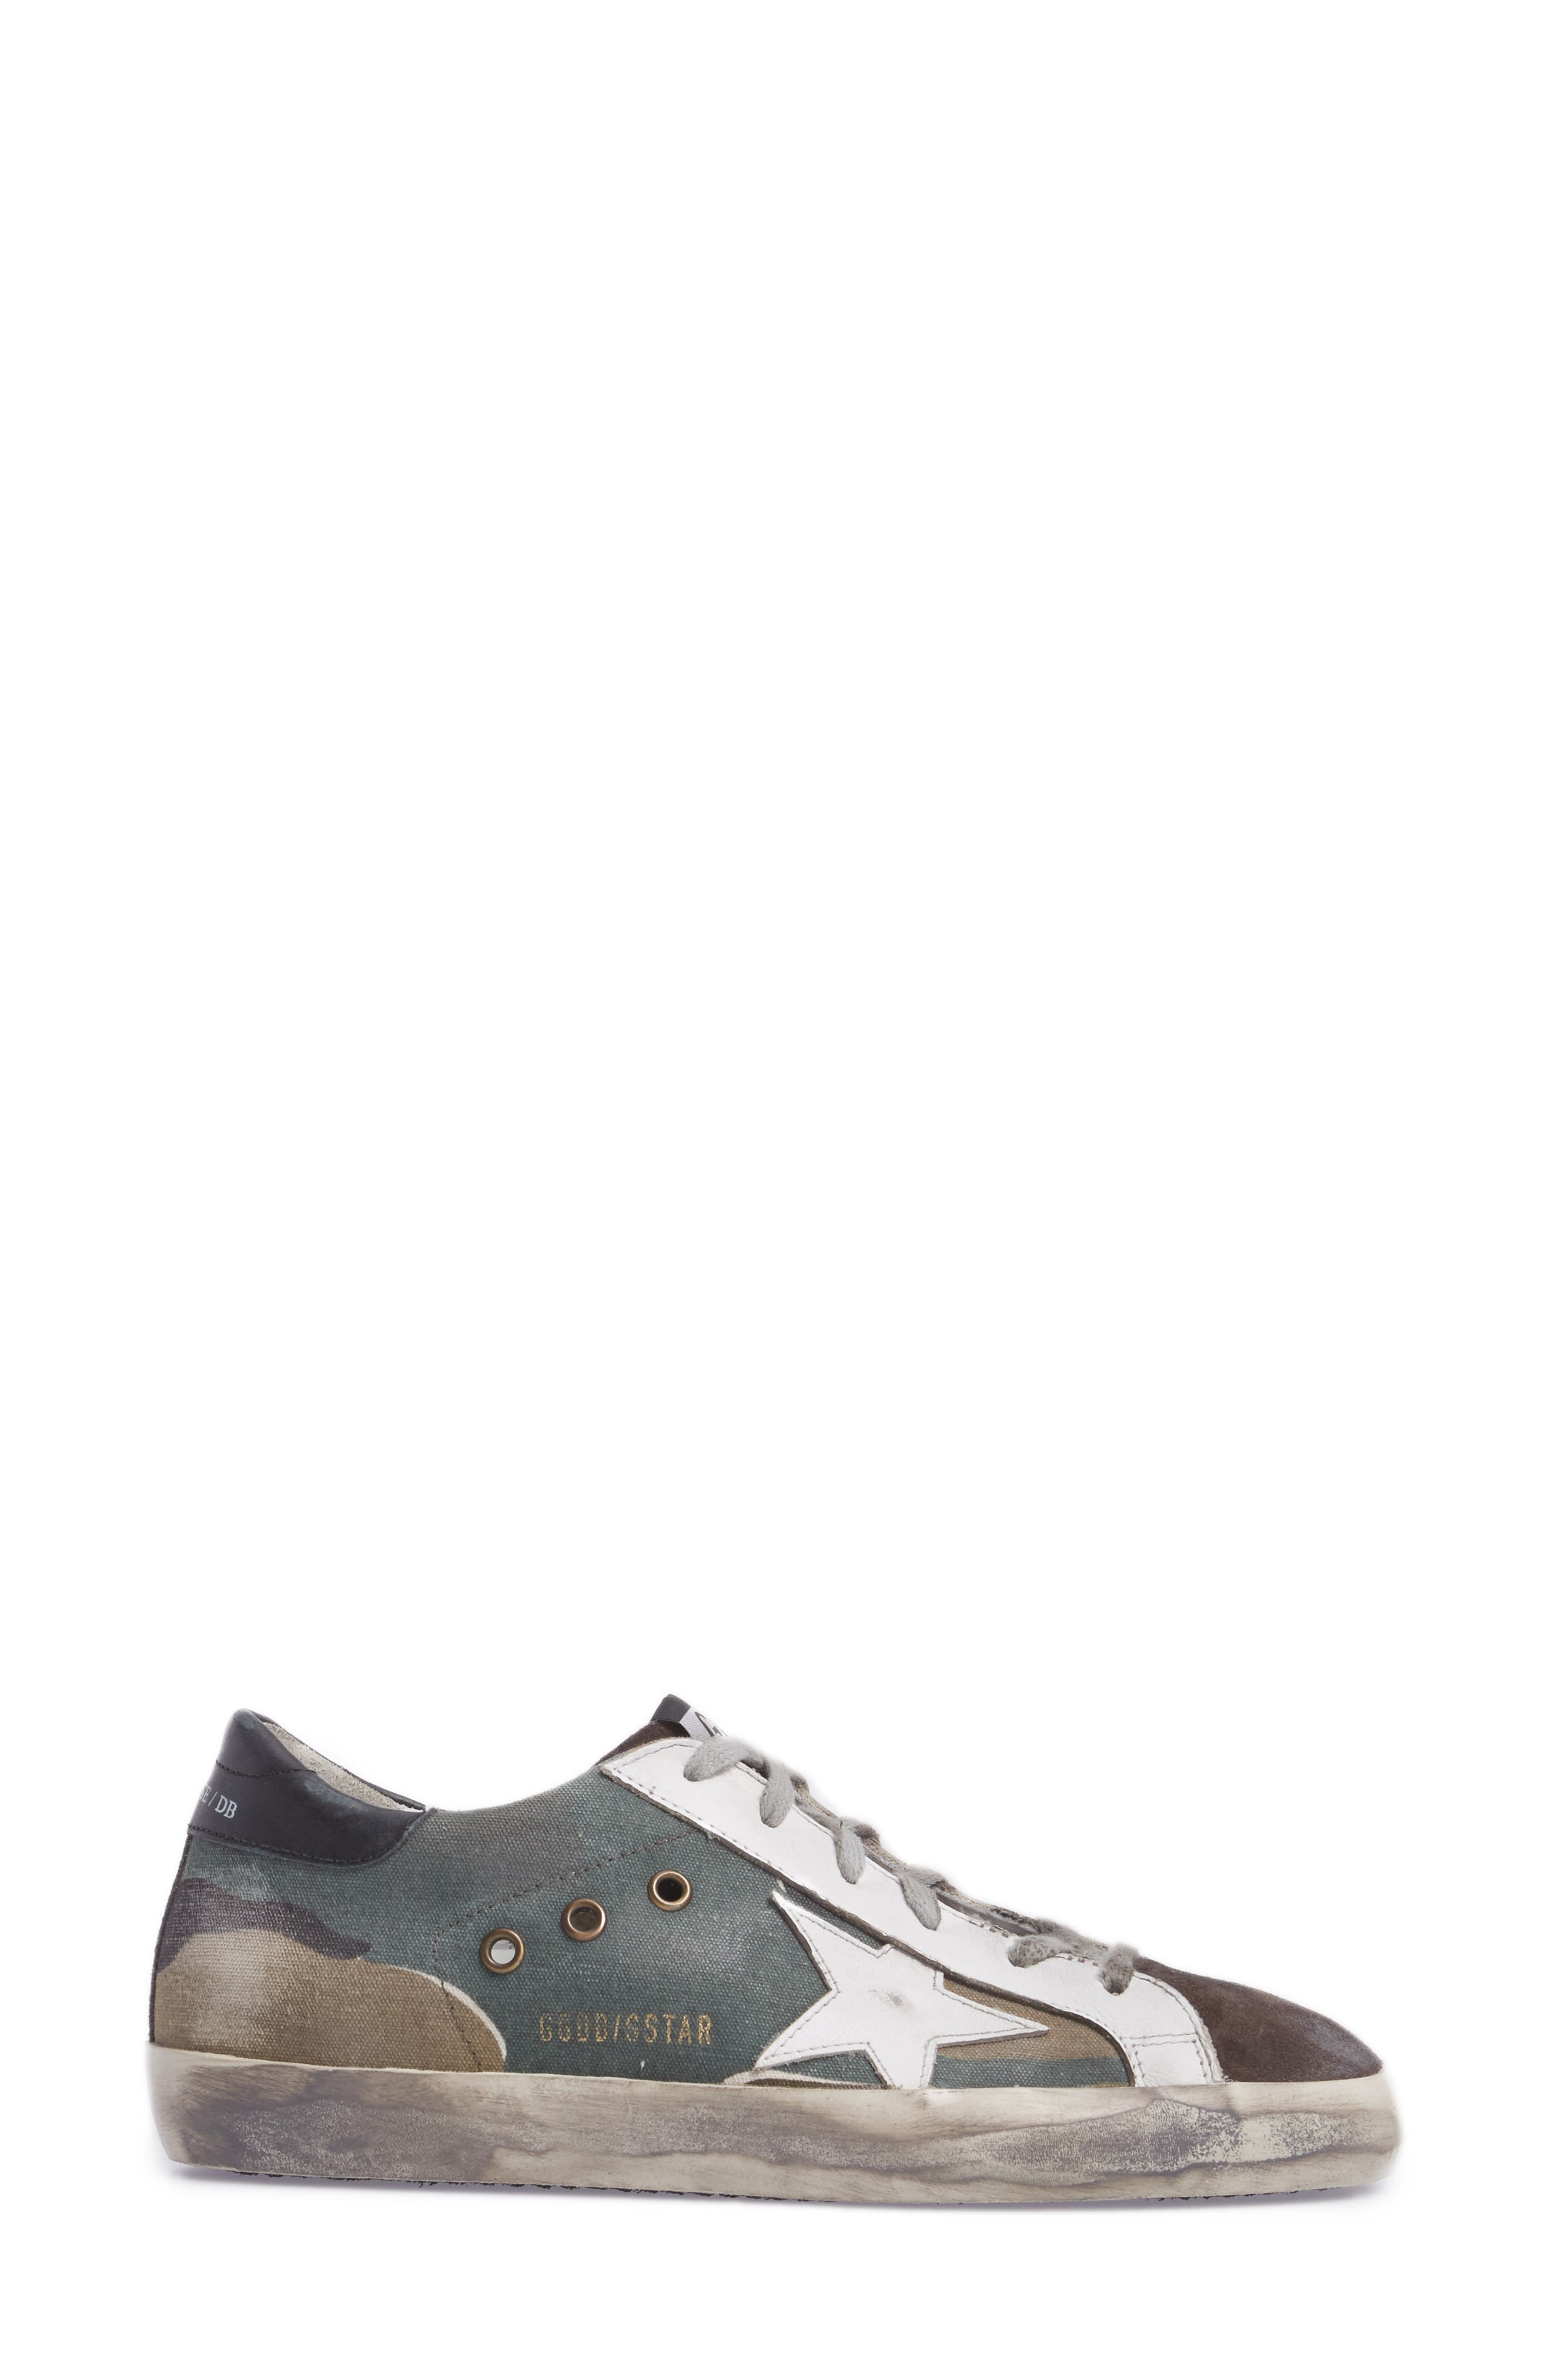 Superstar Low Top Sneaker,                             Alternate thumbnail 3, color,                             Camou Grey